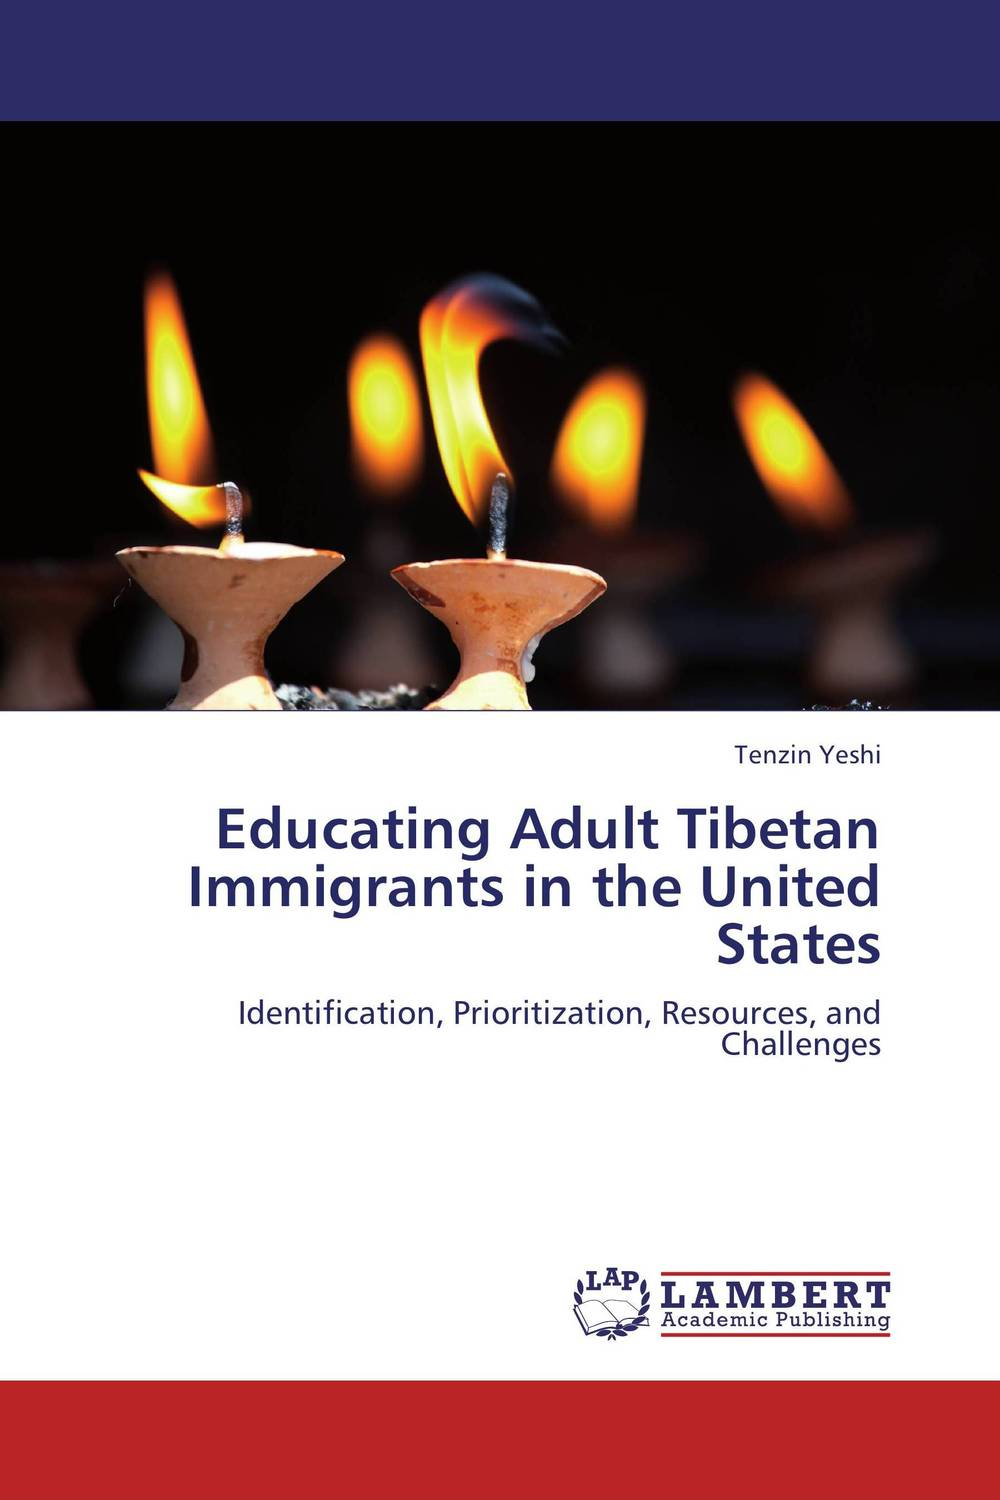 Educating Adult Tibetan Immigrants in the United States corporate debt market in the united states lesson for bangladesh